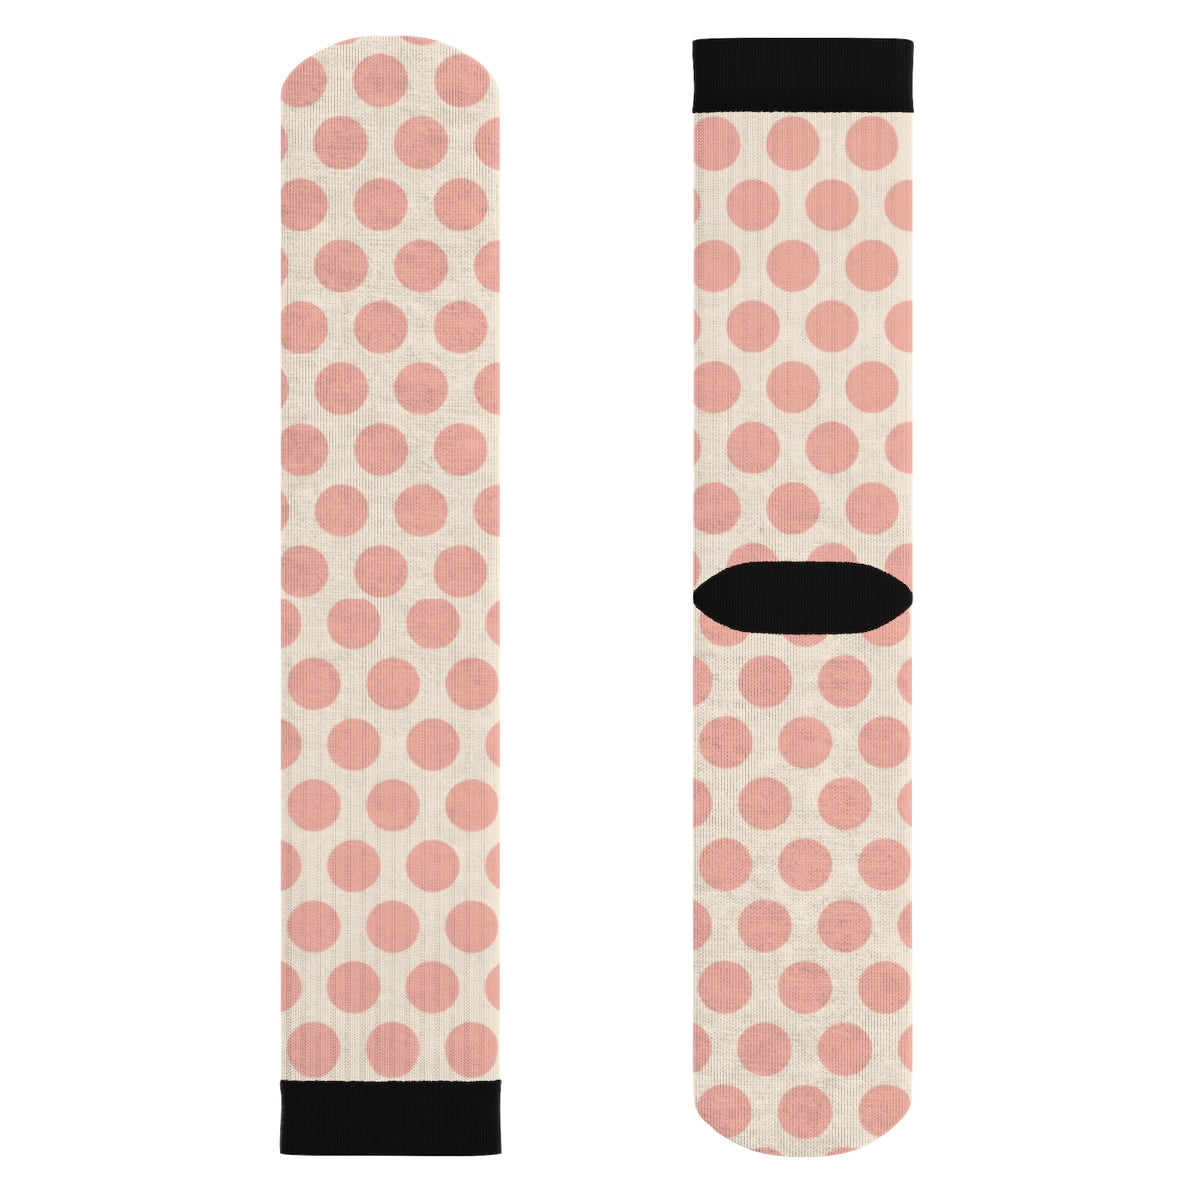 Pink on Pink Polka Dot Socks